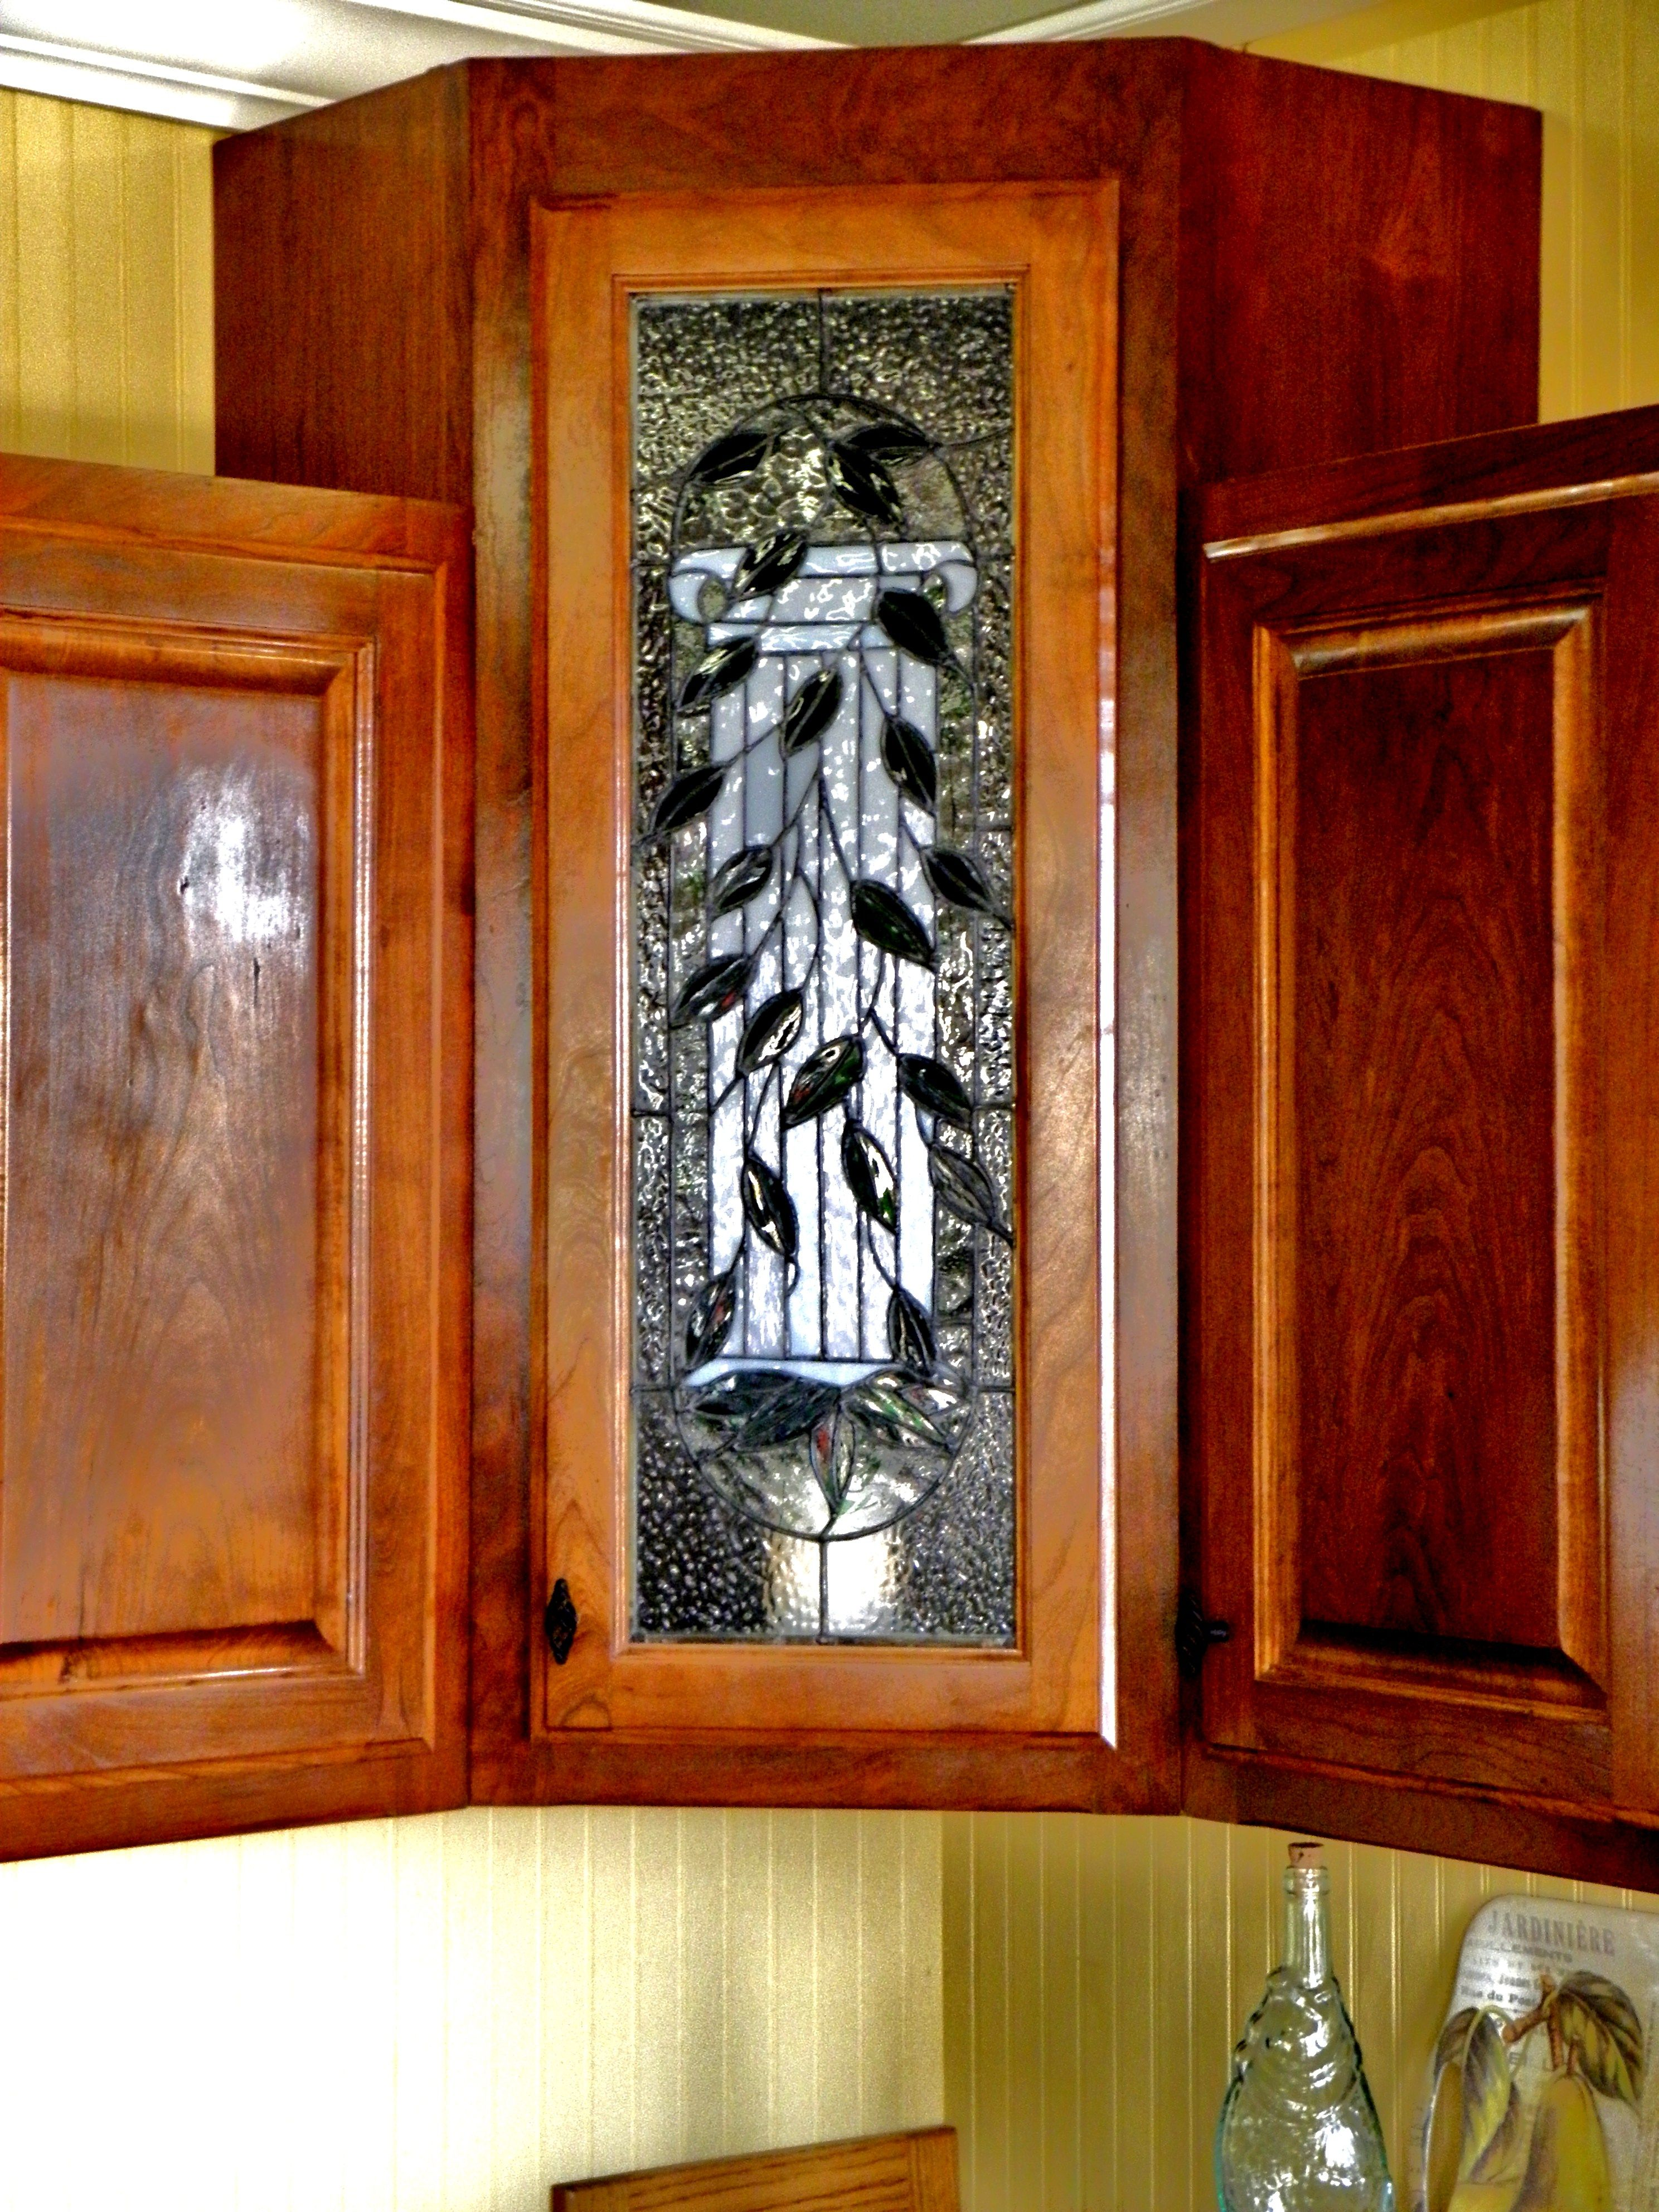 wood and glass kitchen cabinets stainless steel trash cans cabinet doors n 39 stone church 39s stained